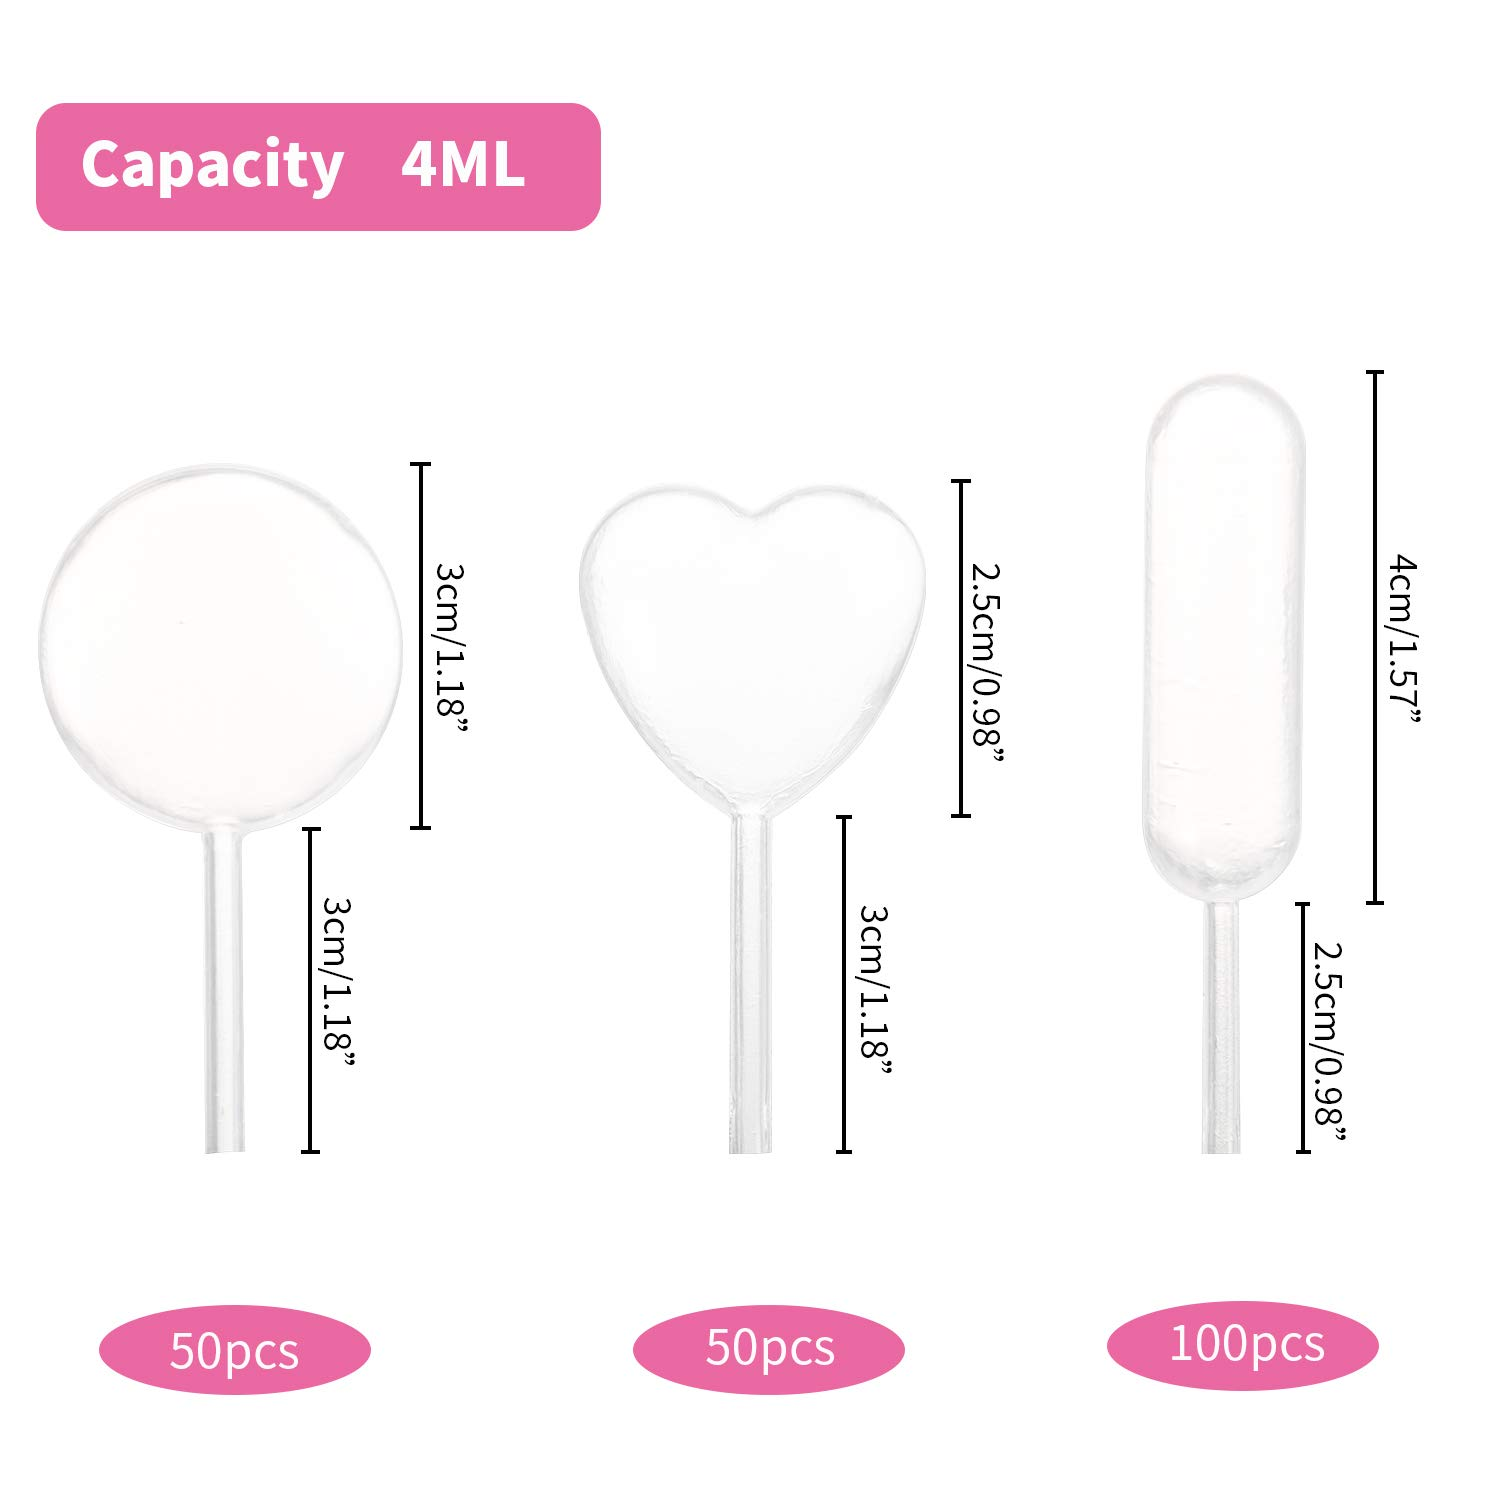 Disposable Mini Squeeze Transfer Pipettes 3 Shape Droppers for Cupcake 200PCS 4ML Plastic Cupcake Pipettes Dessert Strawberries and Chocolate